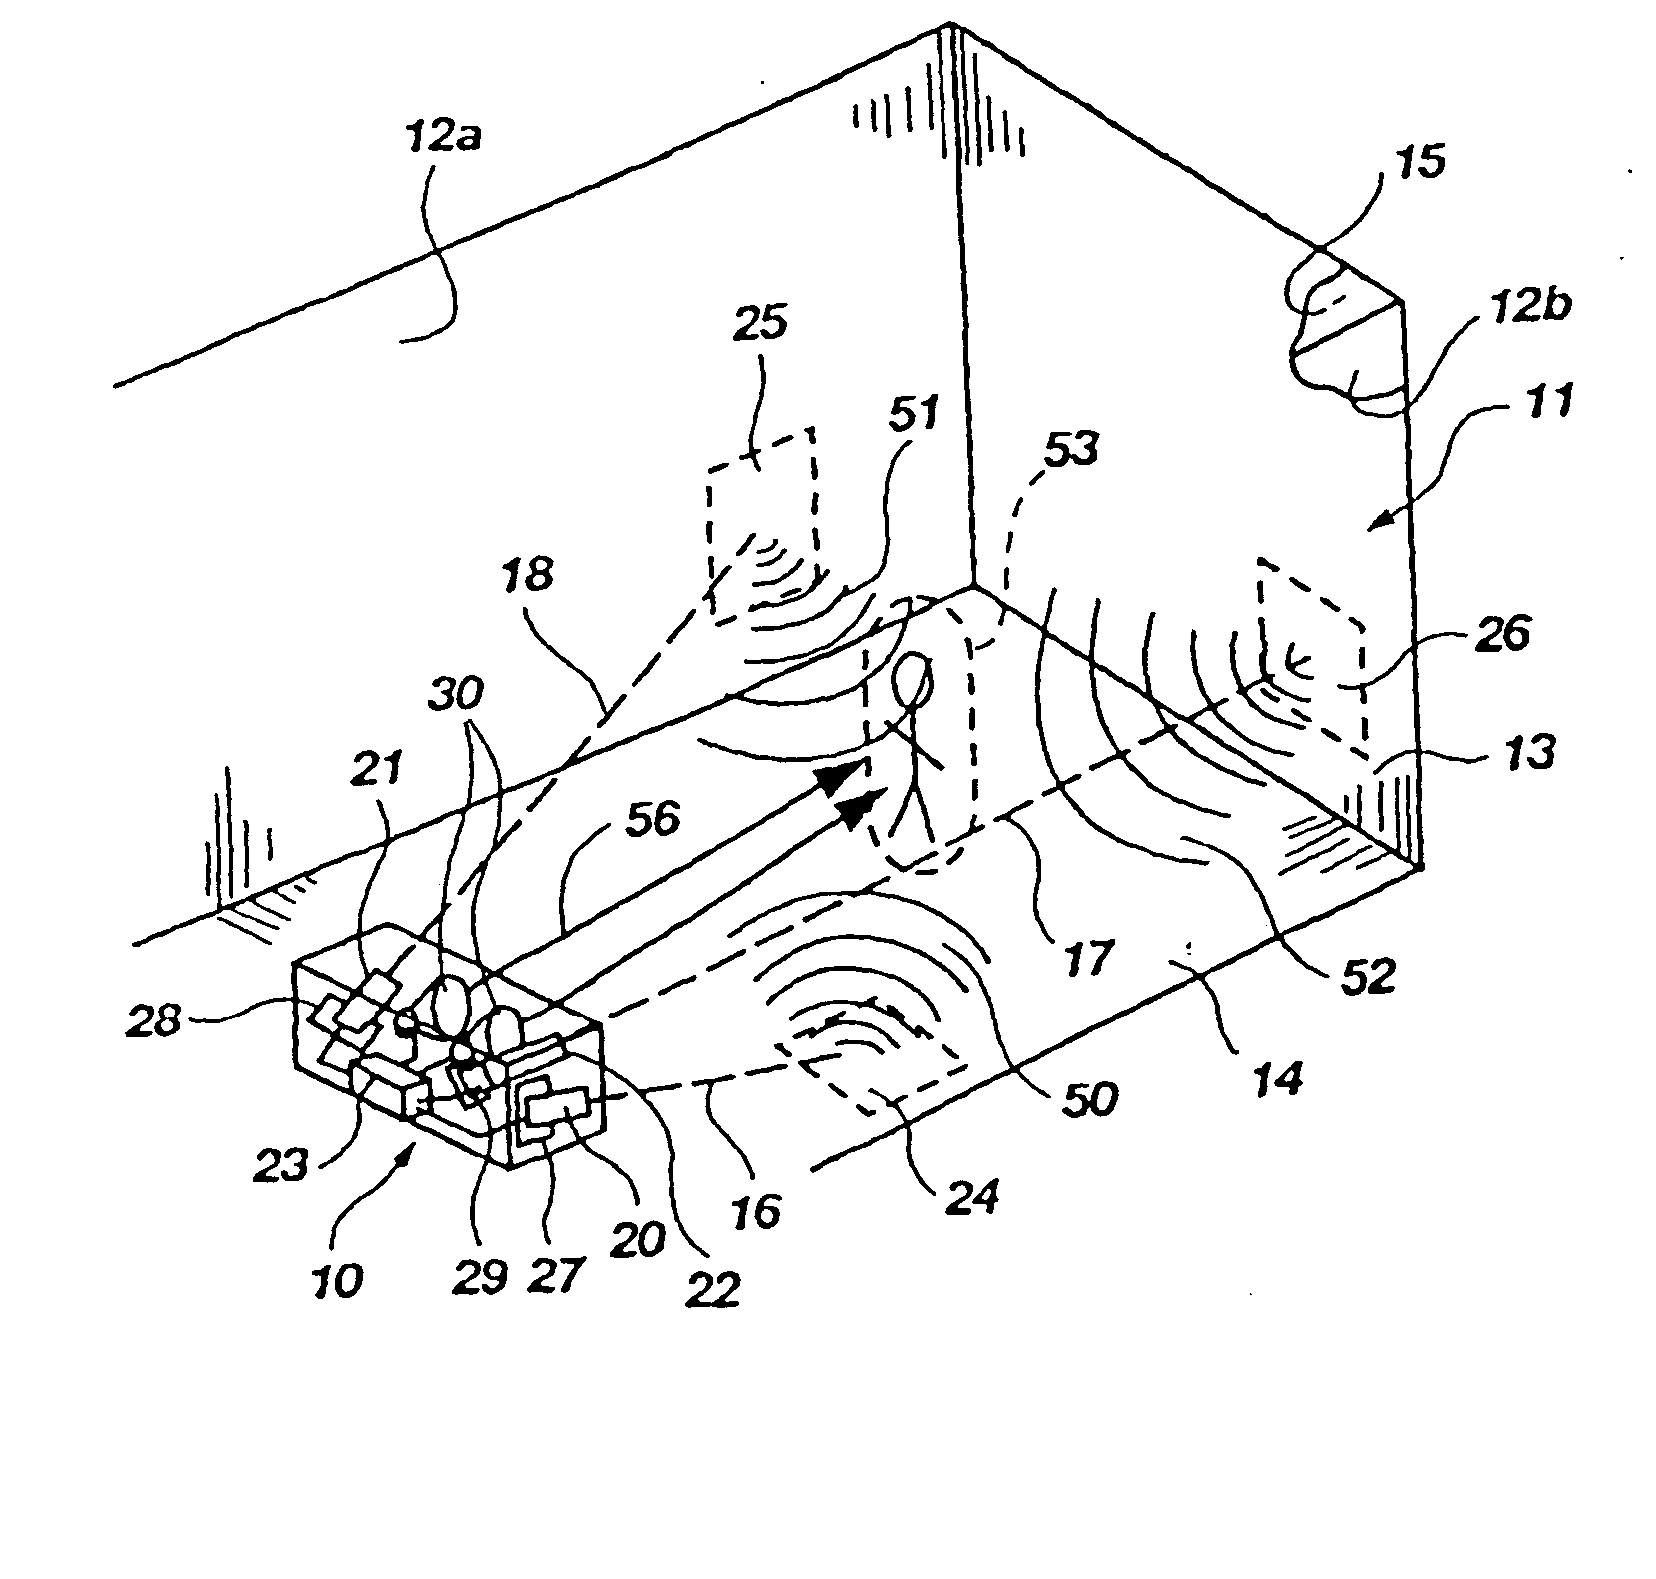 sound headphones google patents on wiring home for surround soundhome surround sound wiring home surround sound wiring diagram wiring a surround sound system wiring diagram